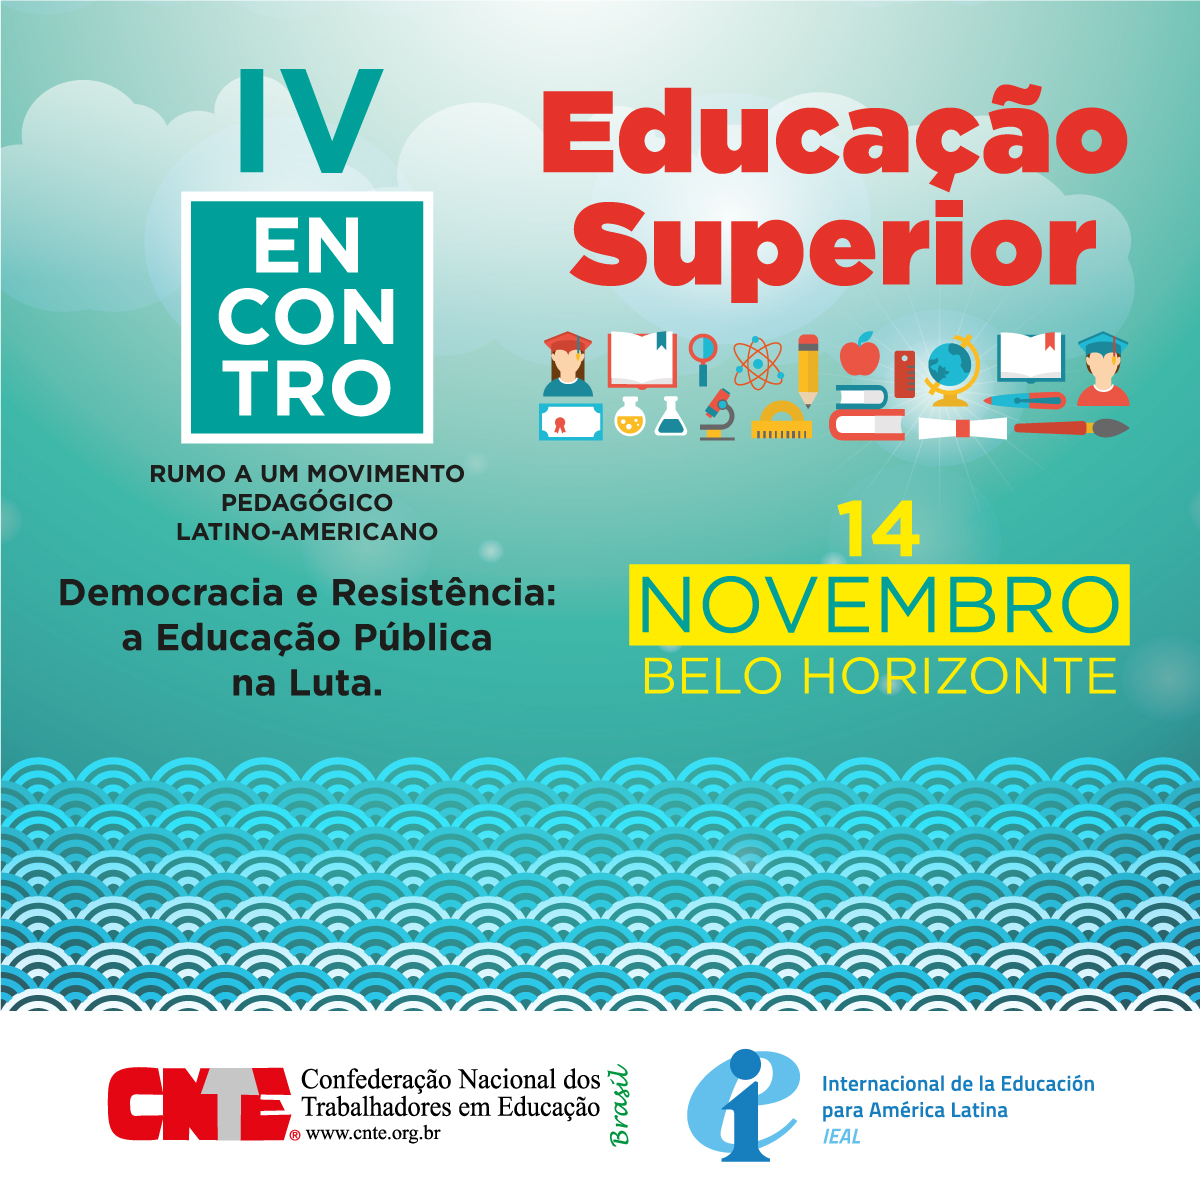 iv encontro educacao superior post facebook